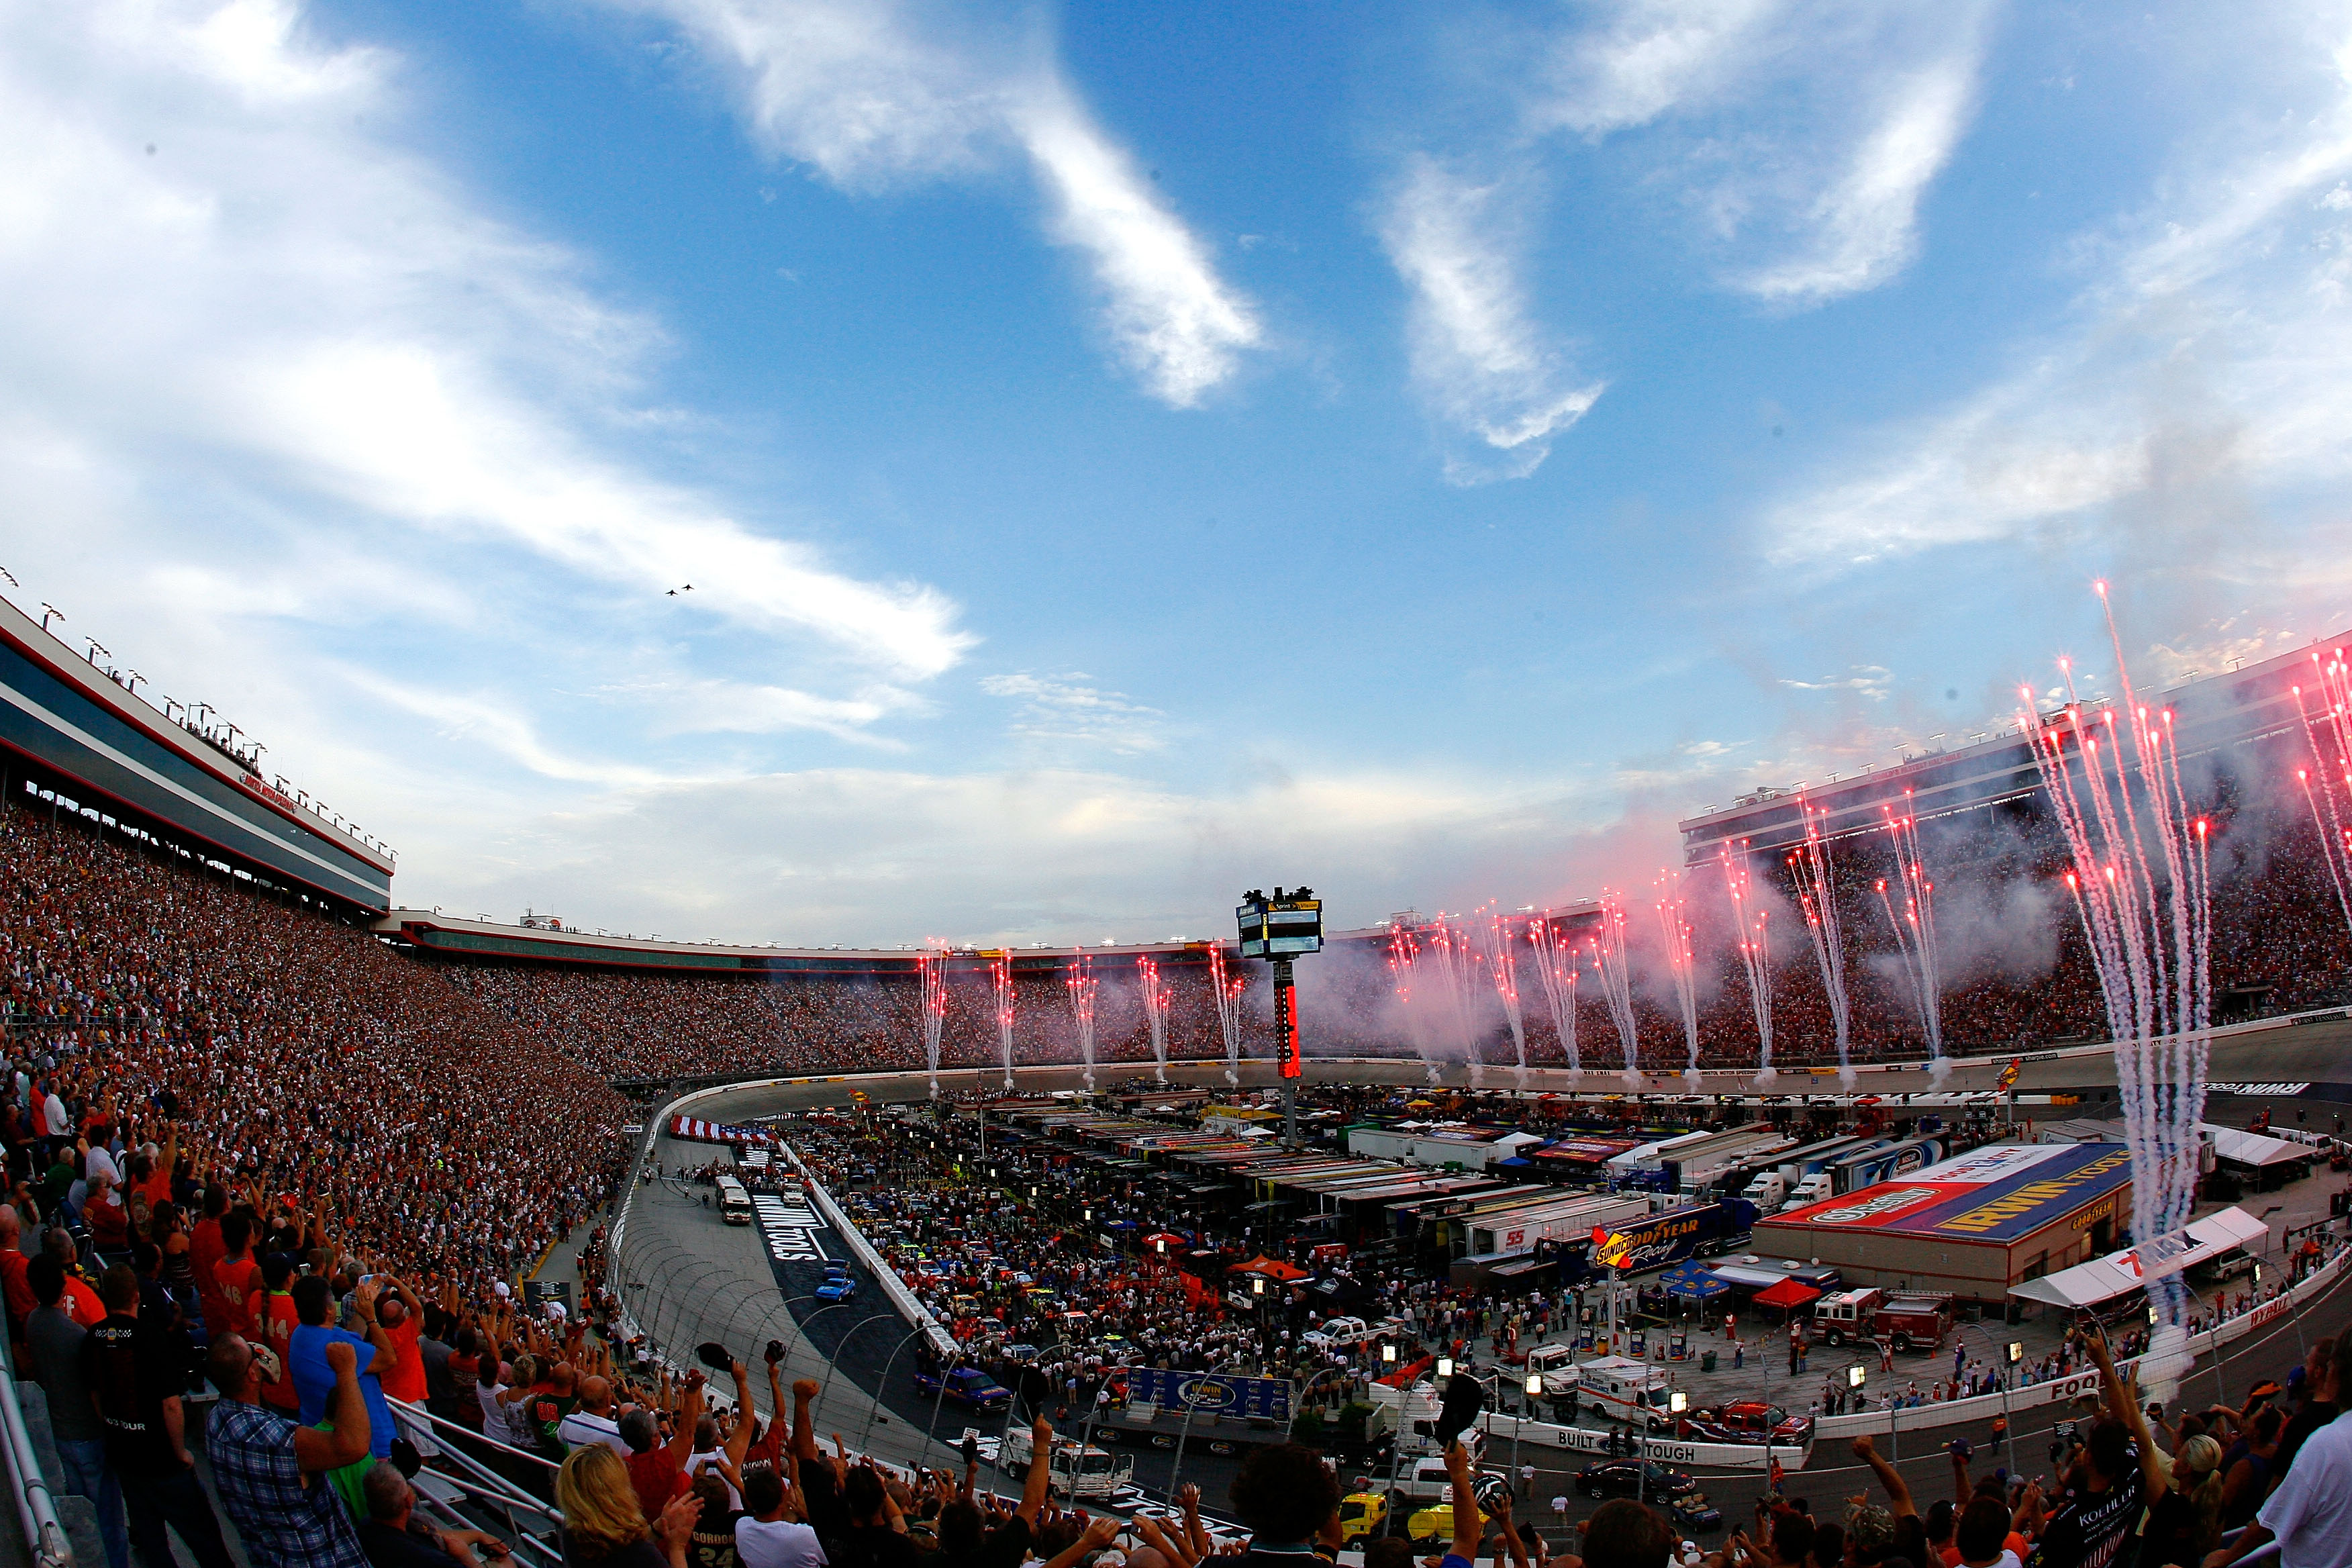 BRISTOL, TN - AUGUST 21:  Fireworks explode during pre-race ceremonies prior to the NASCAR Sprint Cup Series IRWIN Tools Night Race at Bristol Motor Speedway on August 21, 2010 in Bristol, Tennessee.  (Photo by Geoff Burke/Getty Images for NASCAR)